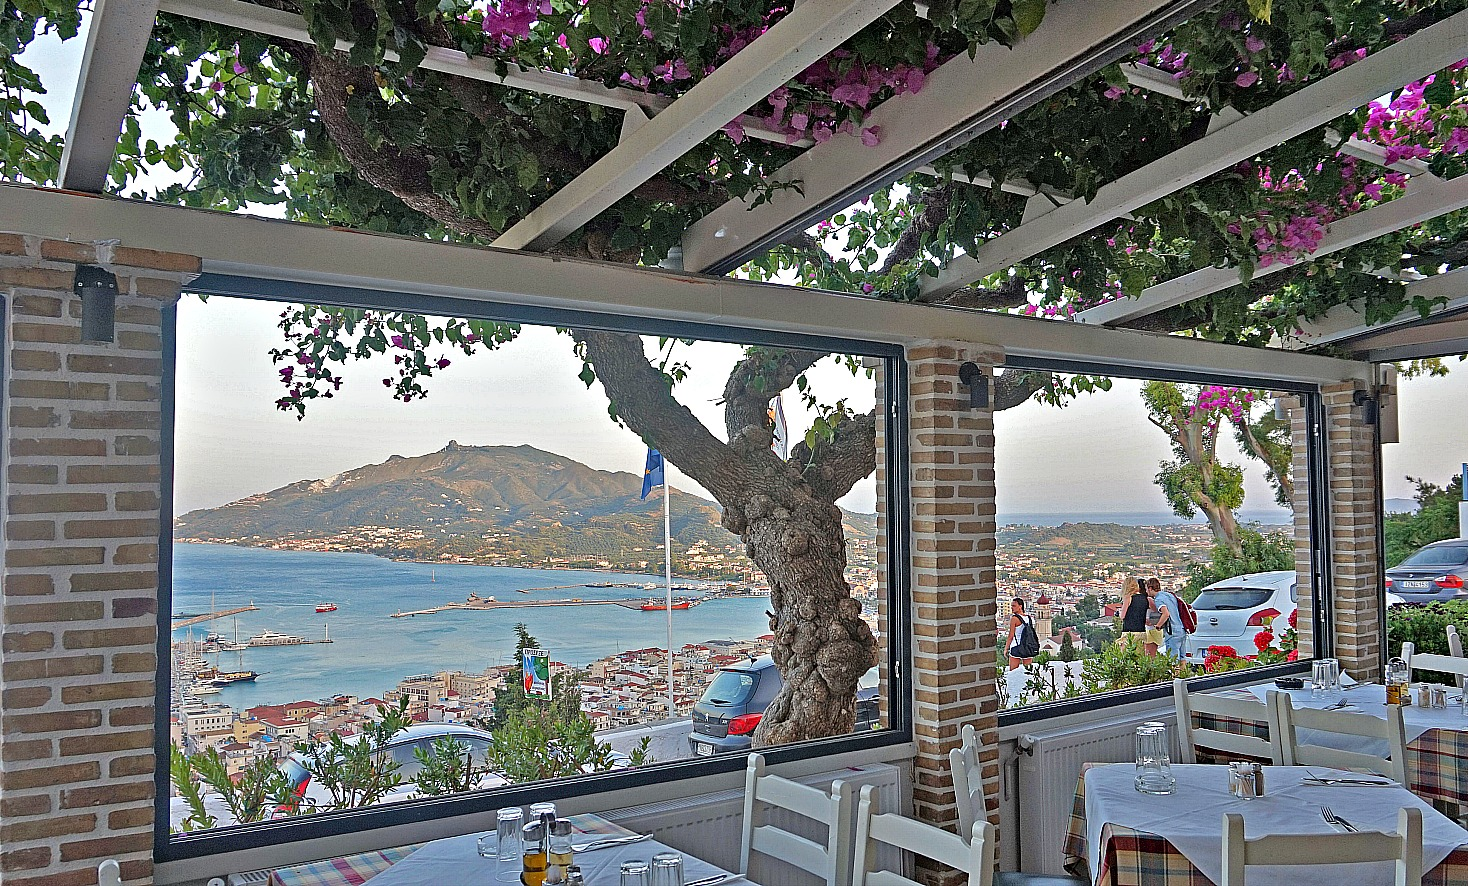 Zakynthos Greece - how to visit. View of Zakynthos from a restaurant.